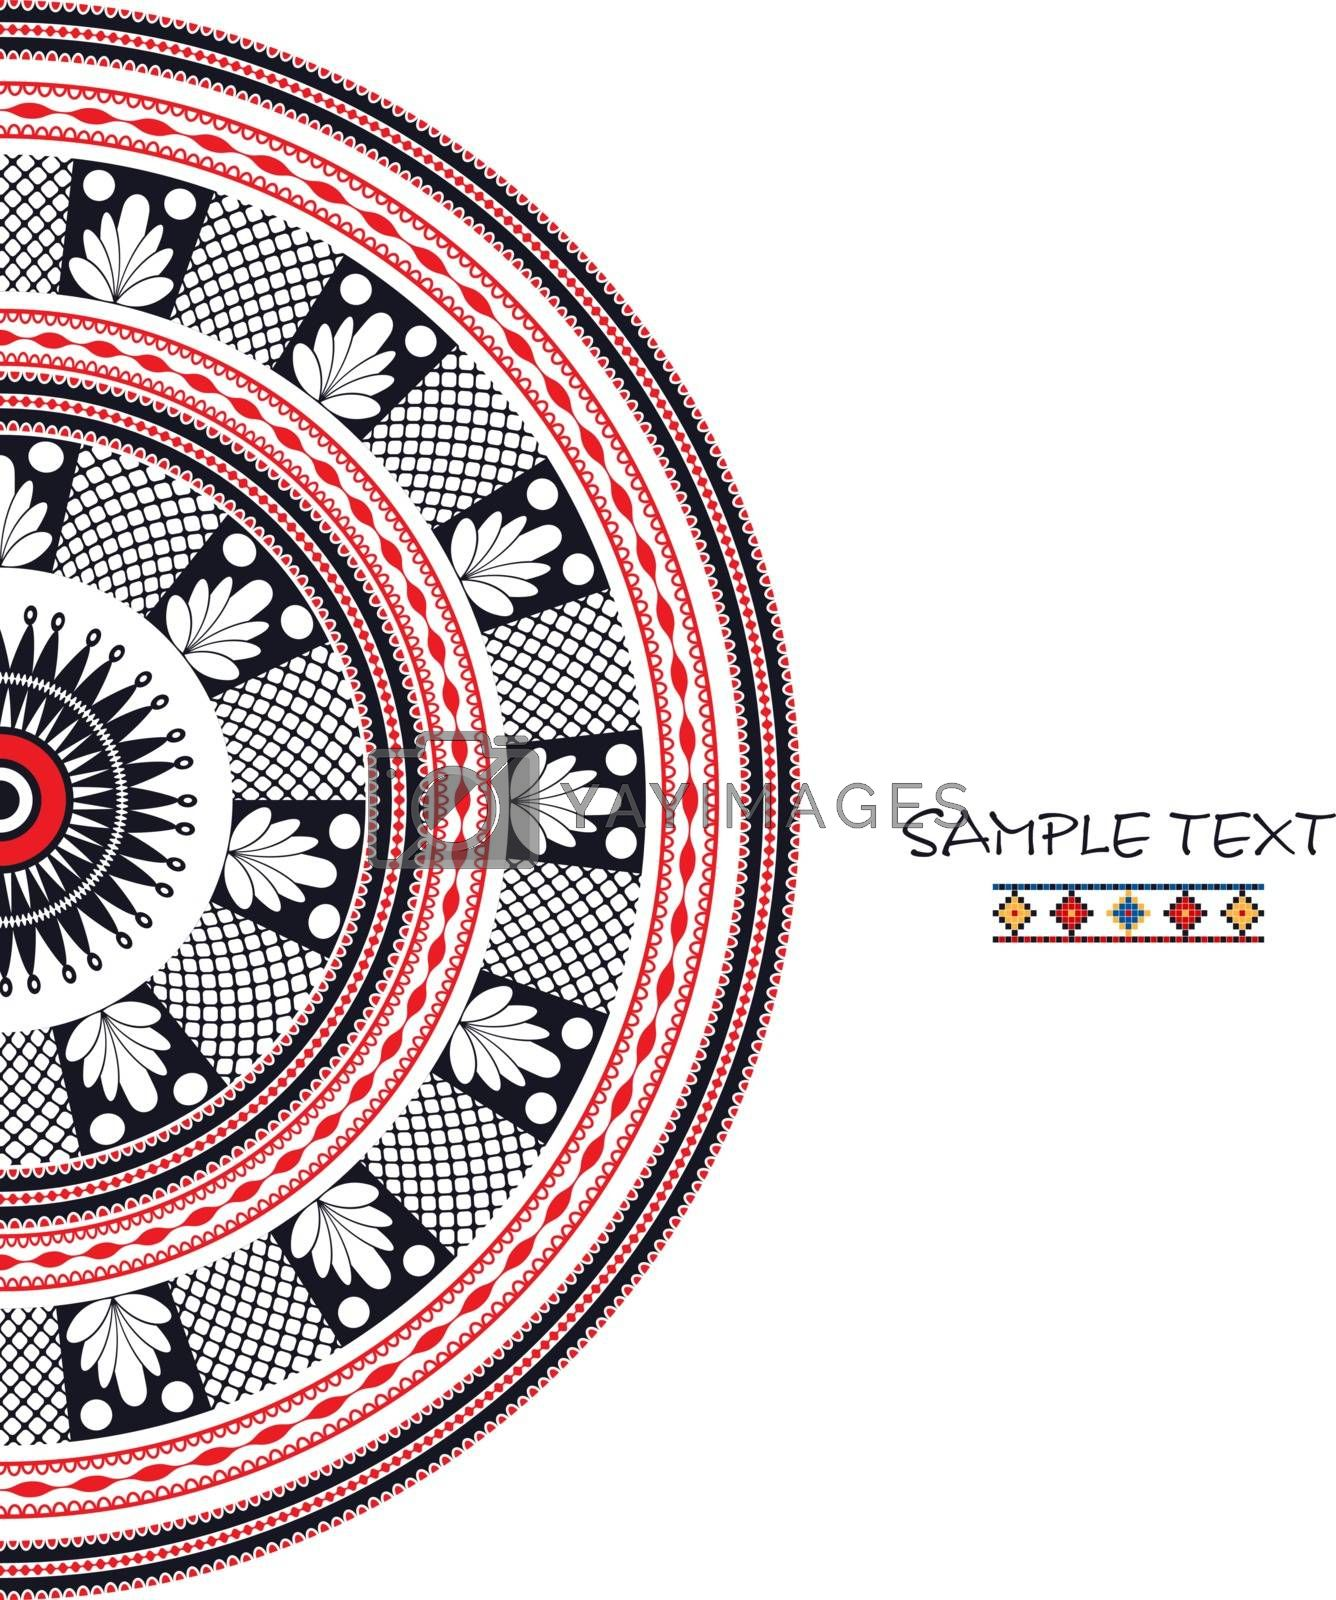 Decorative background with traditional Romanian ornament and place for text.